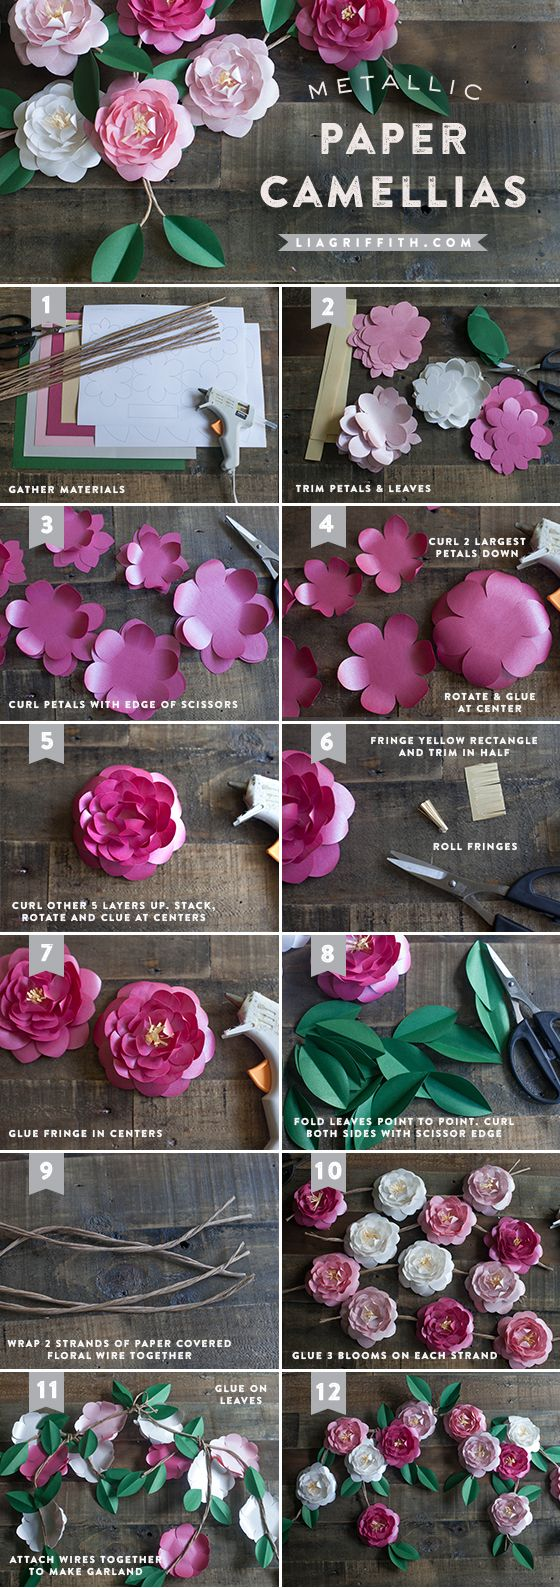 Paper Camellia Tutorial - by Lia Griffith... Thinking about using these to frame the mirror in one of our bathrooms